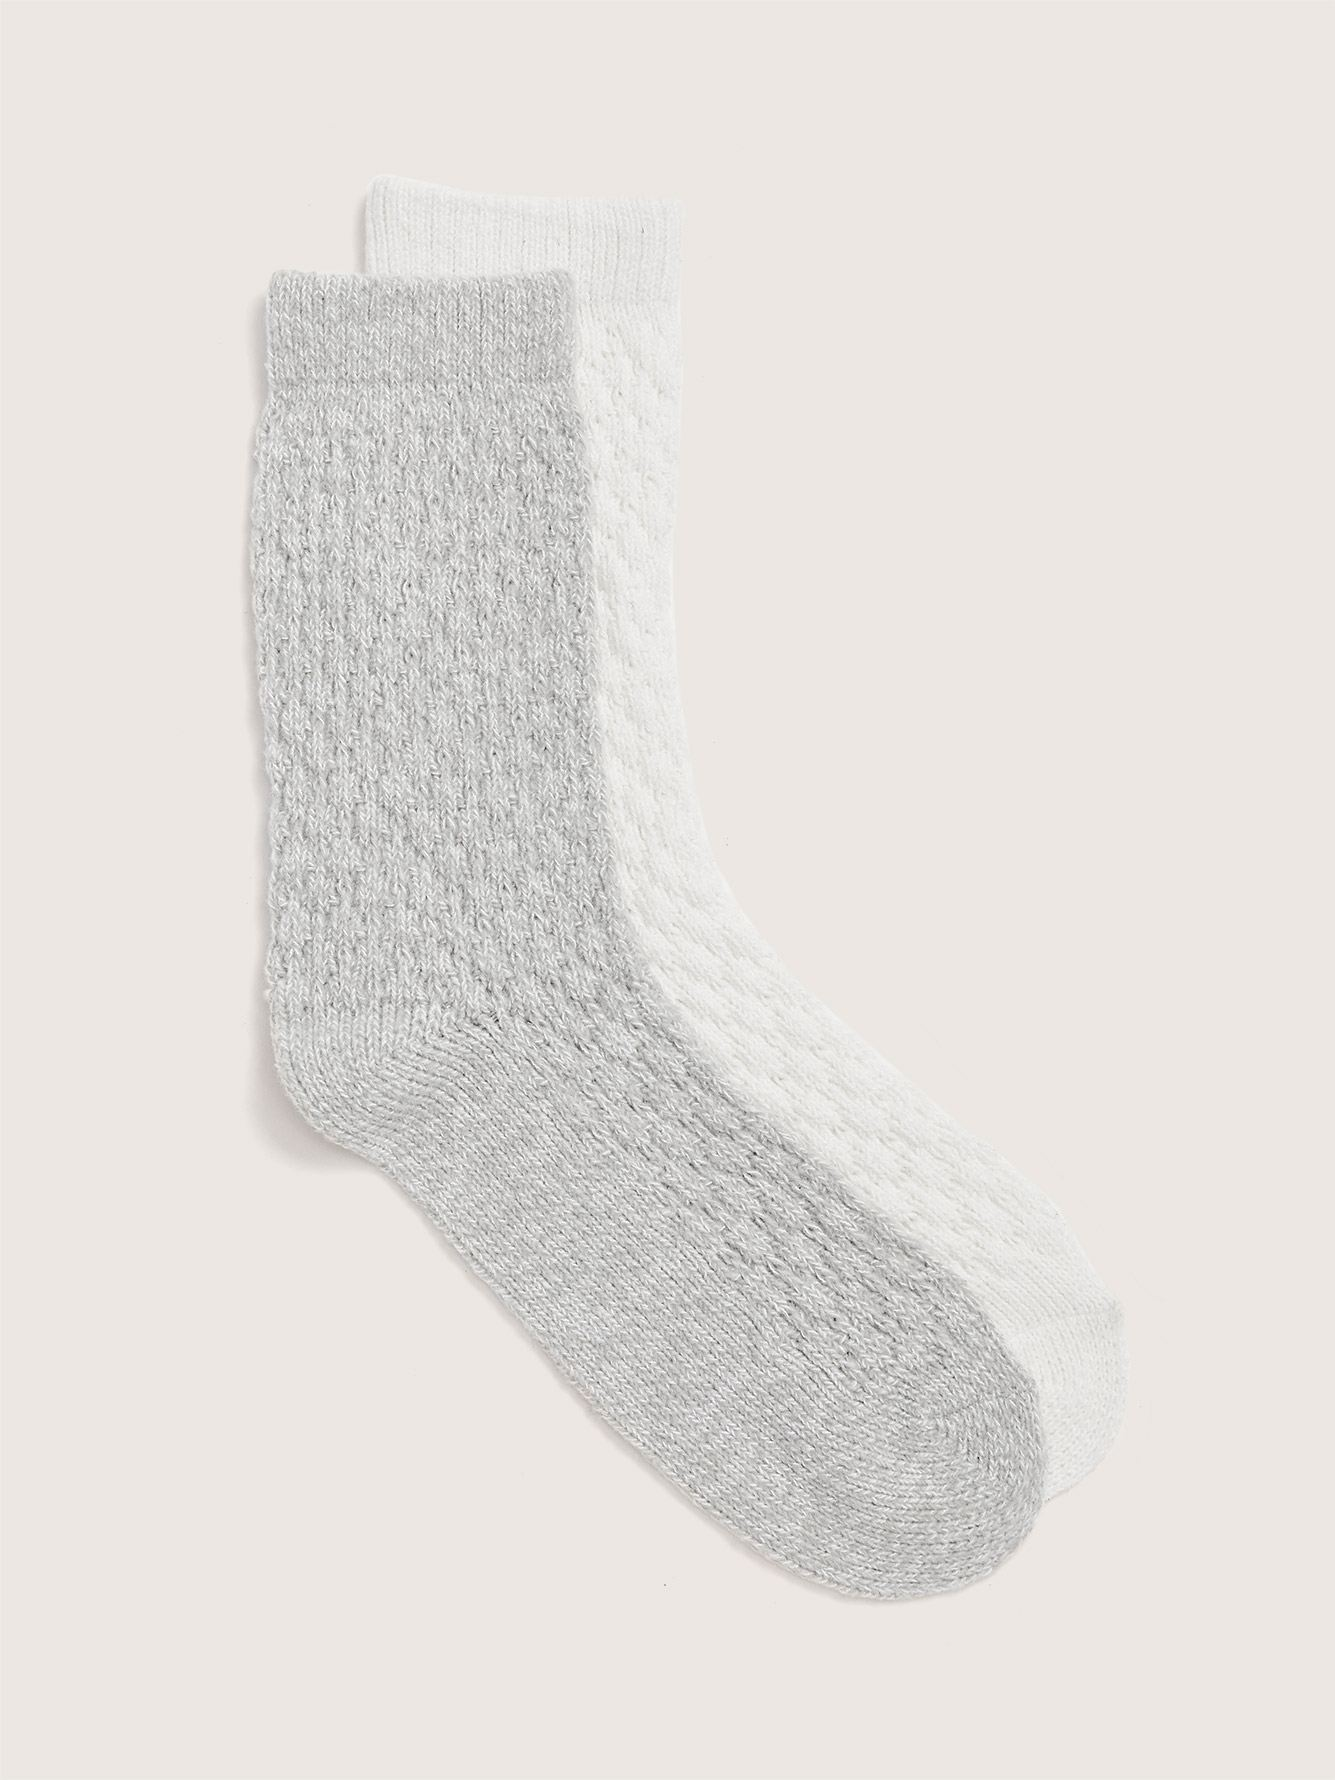 Soft Cozy Socks, 2-Pack - Addition Elle